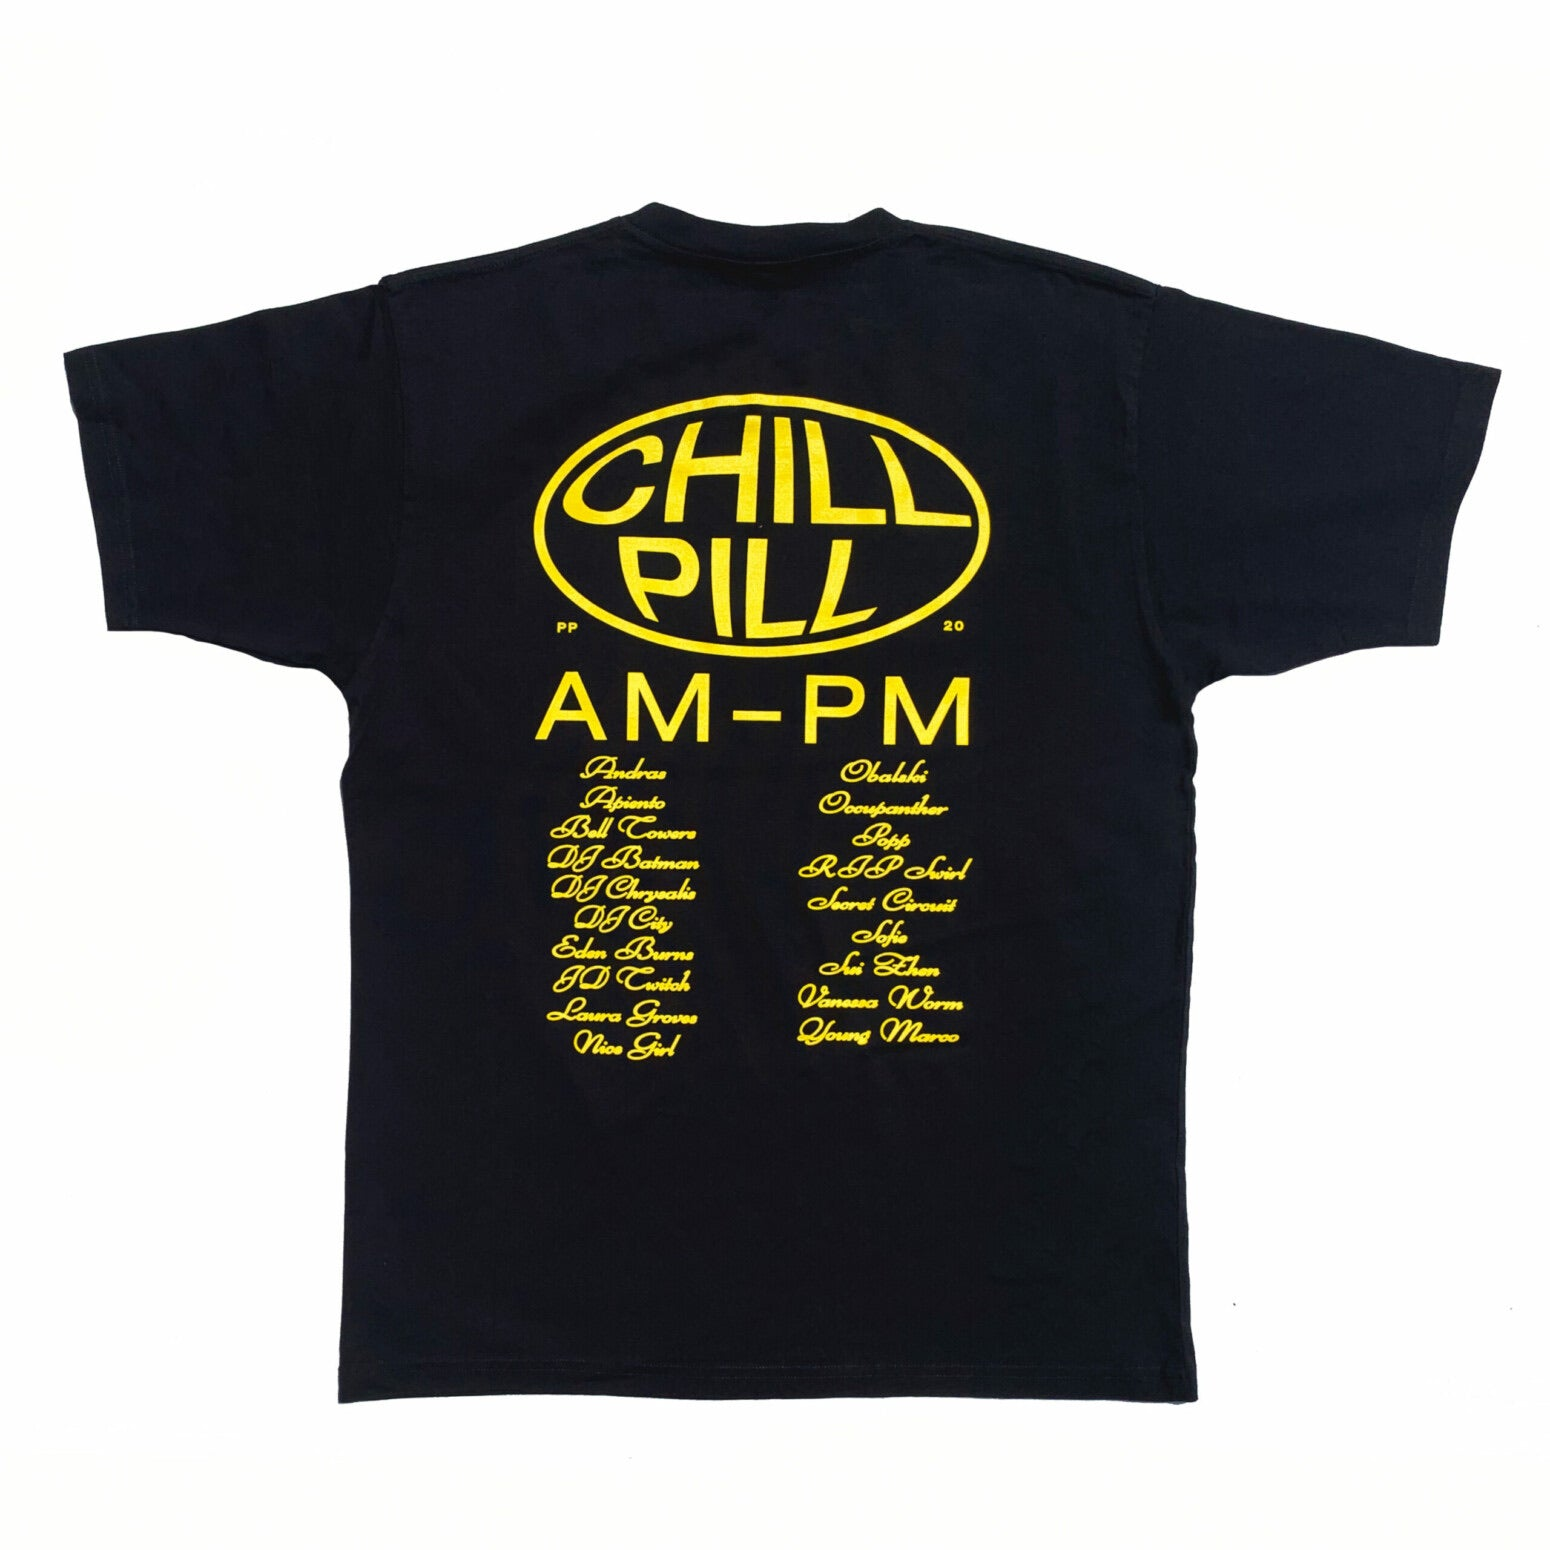 Public Possession - Possession - Chill Pill ll -  T-Shirt - Charcoal